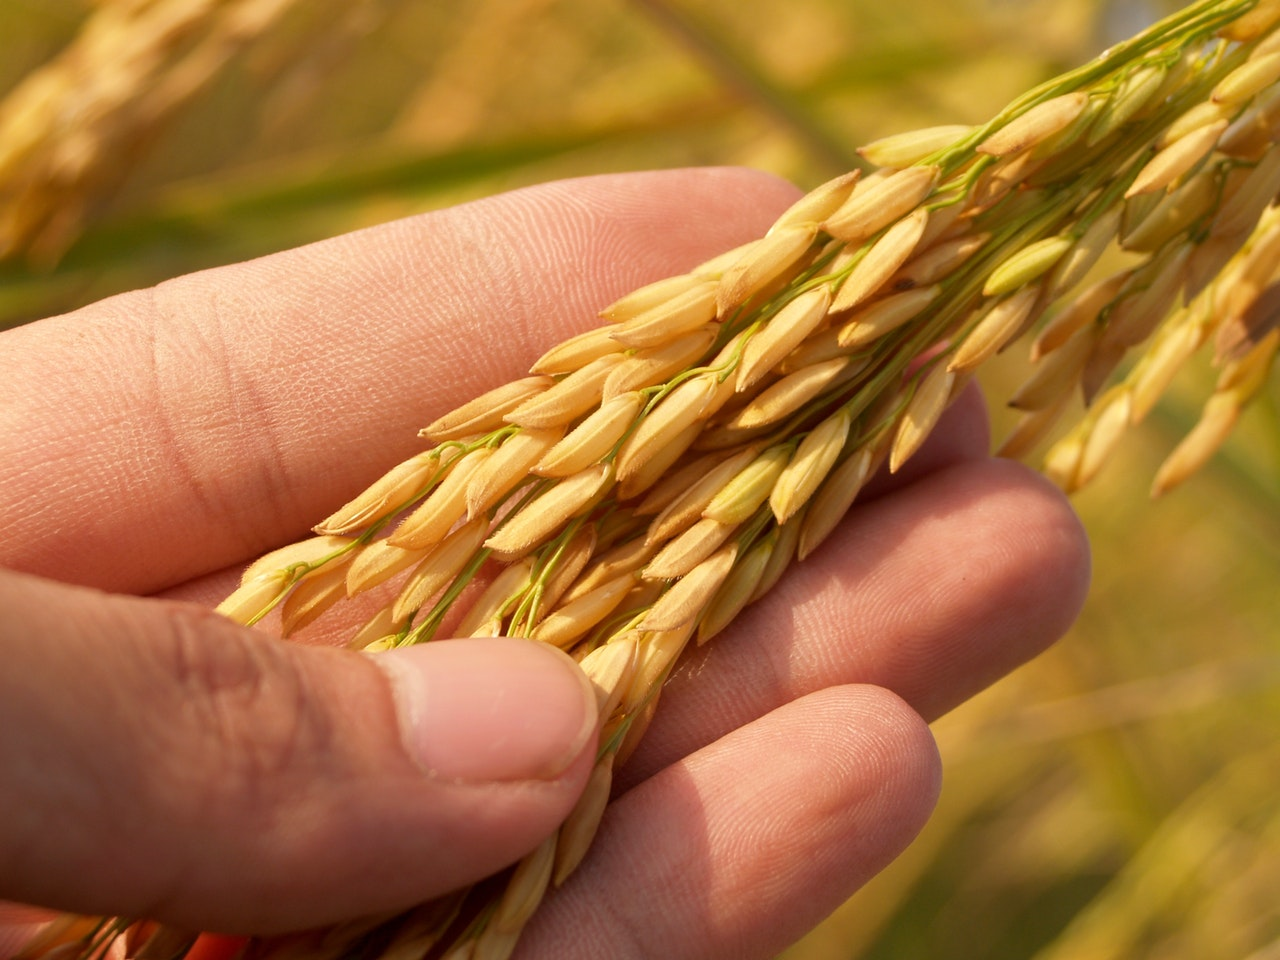 Golden paddy are expensive in market